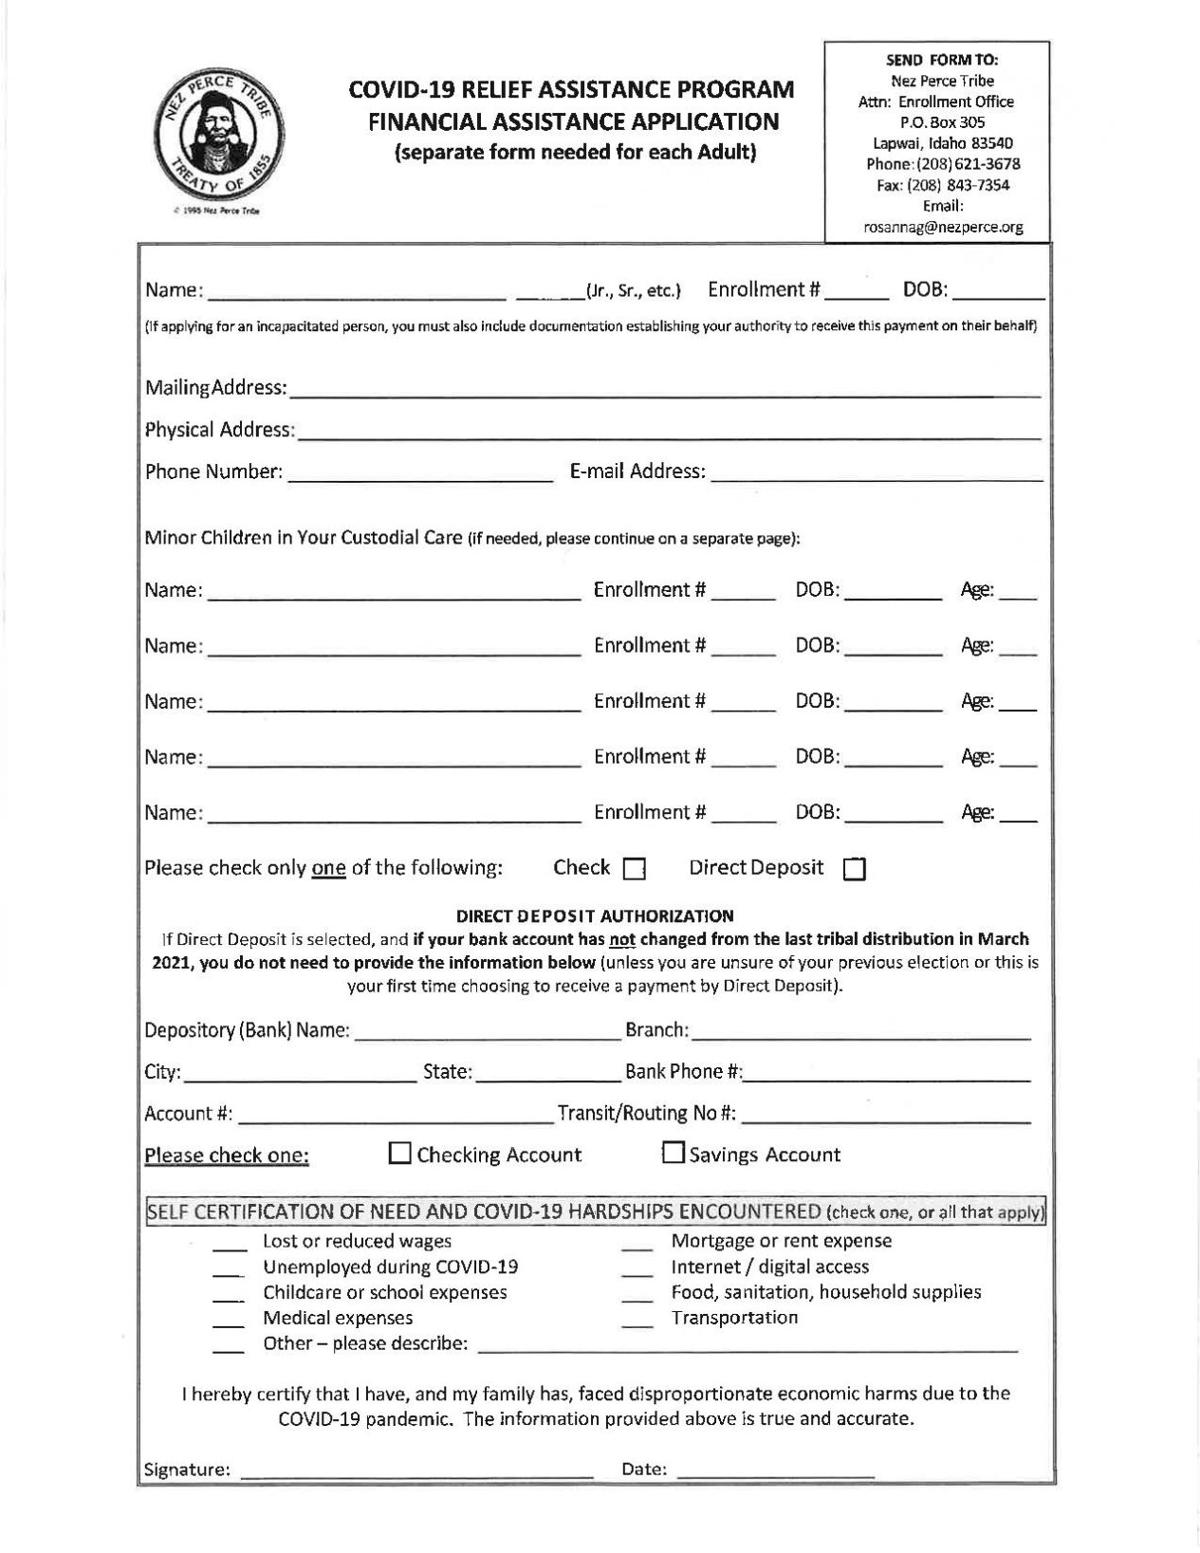 NPT American Rescue Act Application